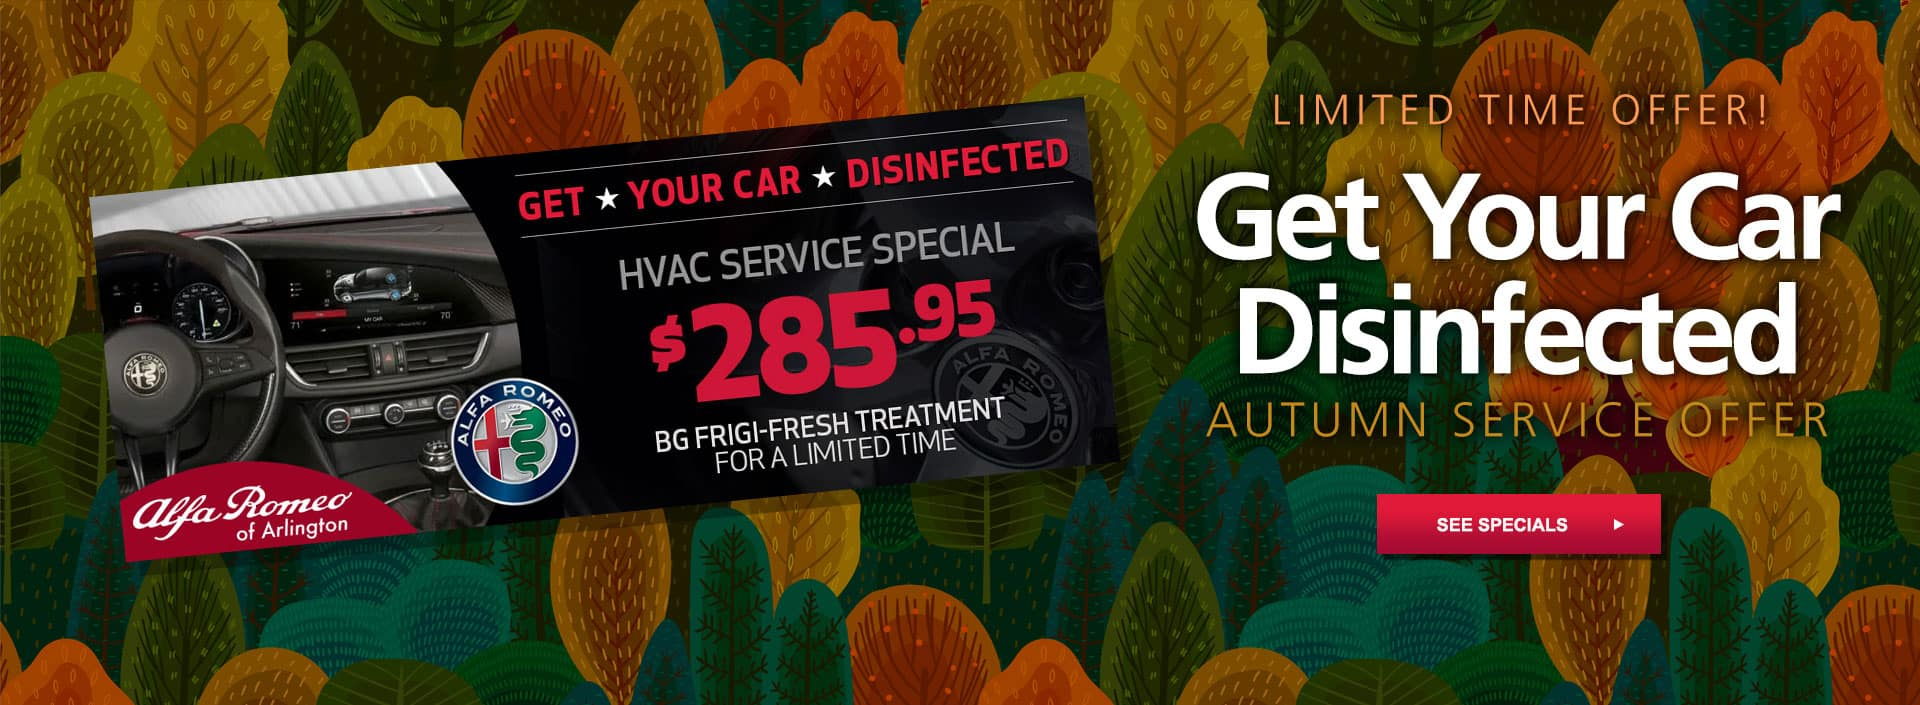 get your car disinfected coupon